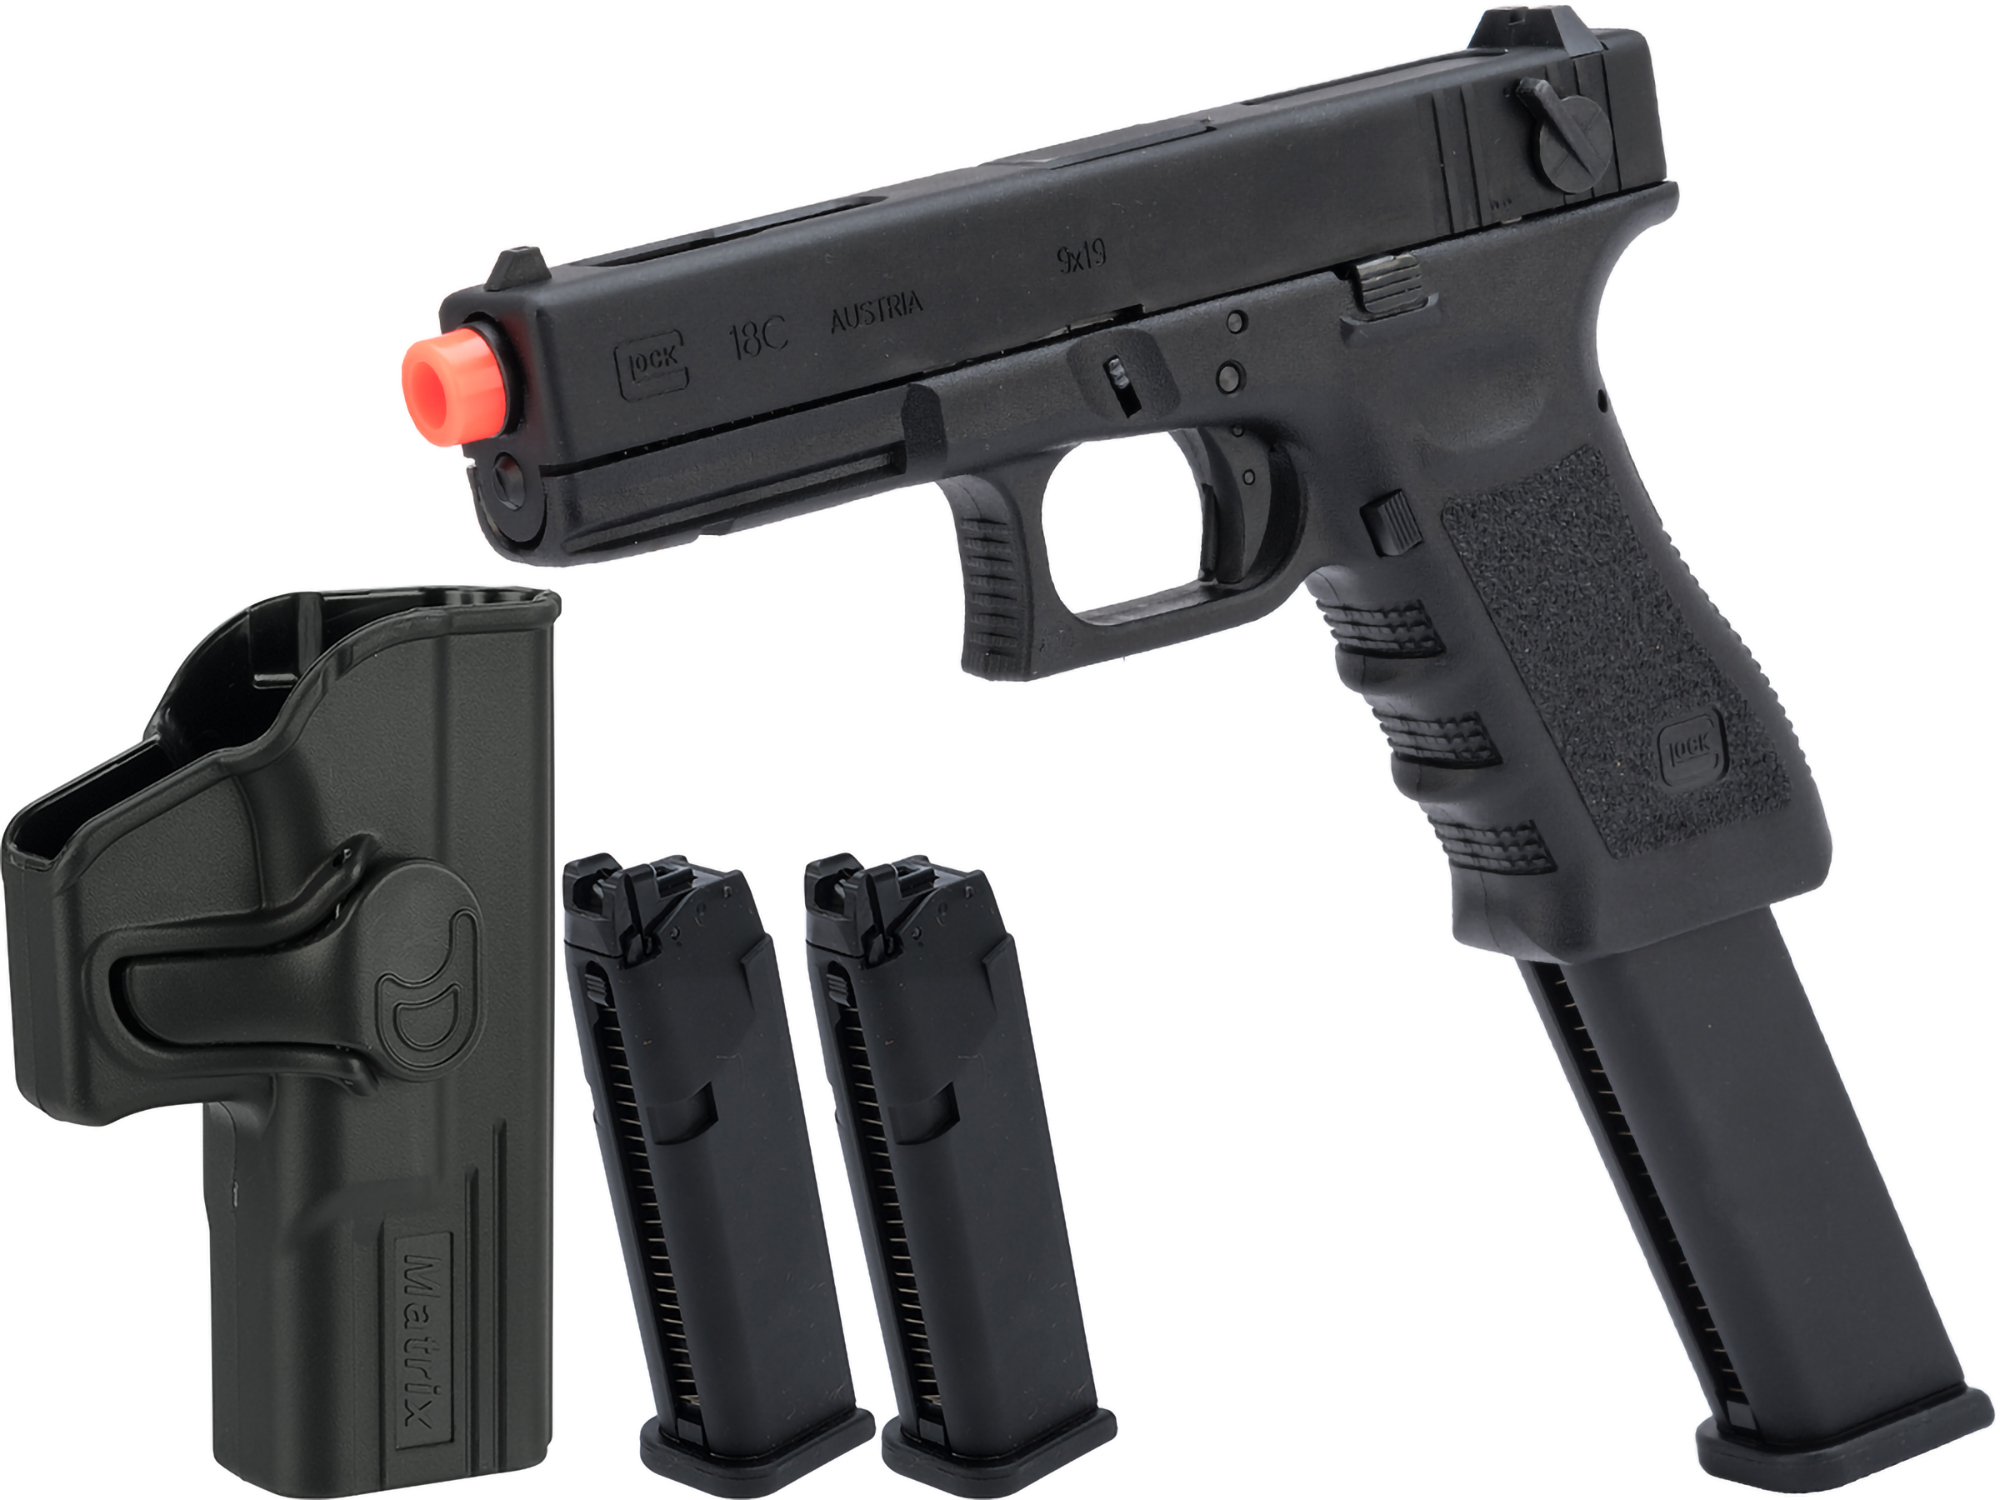 Elite Force Fully Licensed GLOCK 18C Select Fire Semi / Full Auto Gas Blowback Airsoft Pistol w/ Extended Mag (Type: Green Gas)